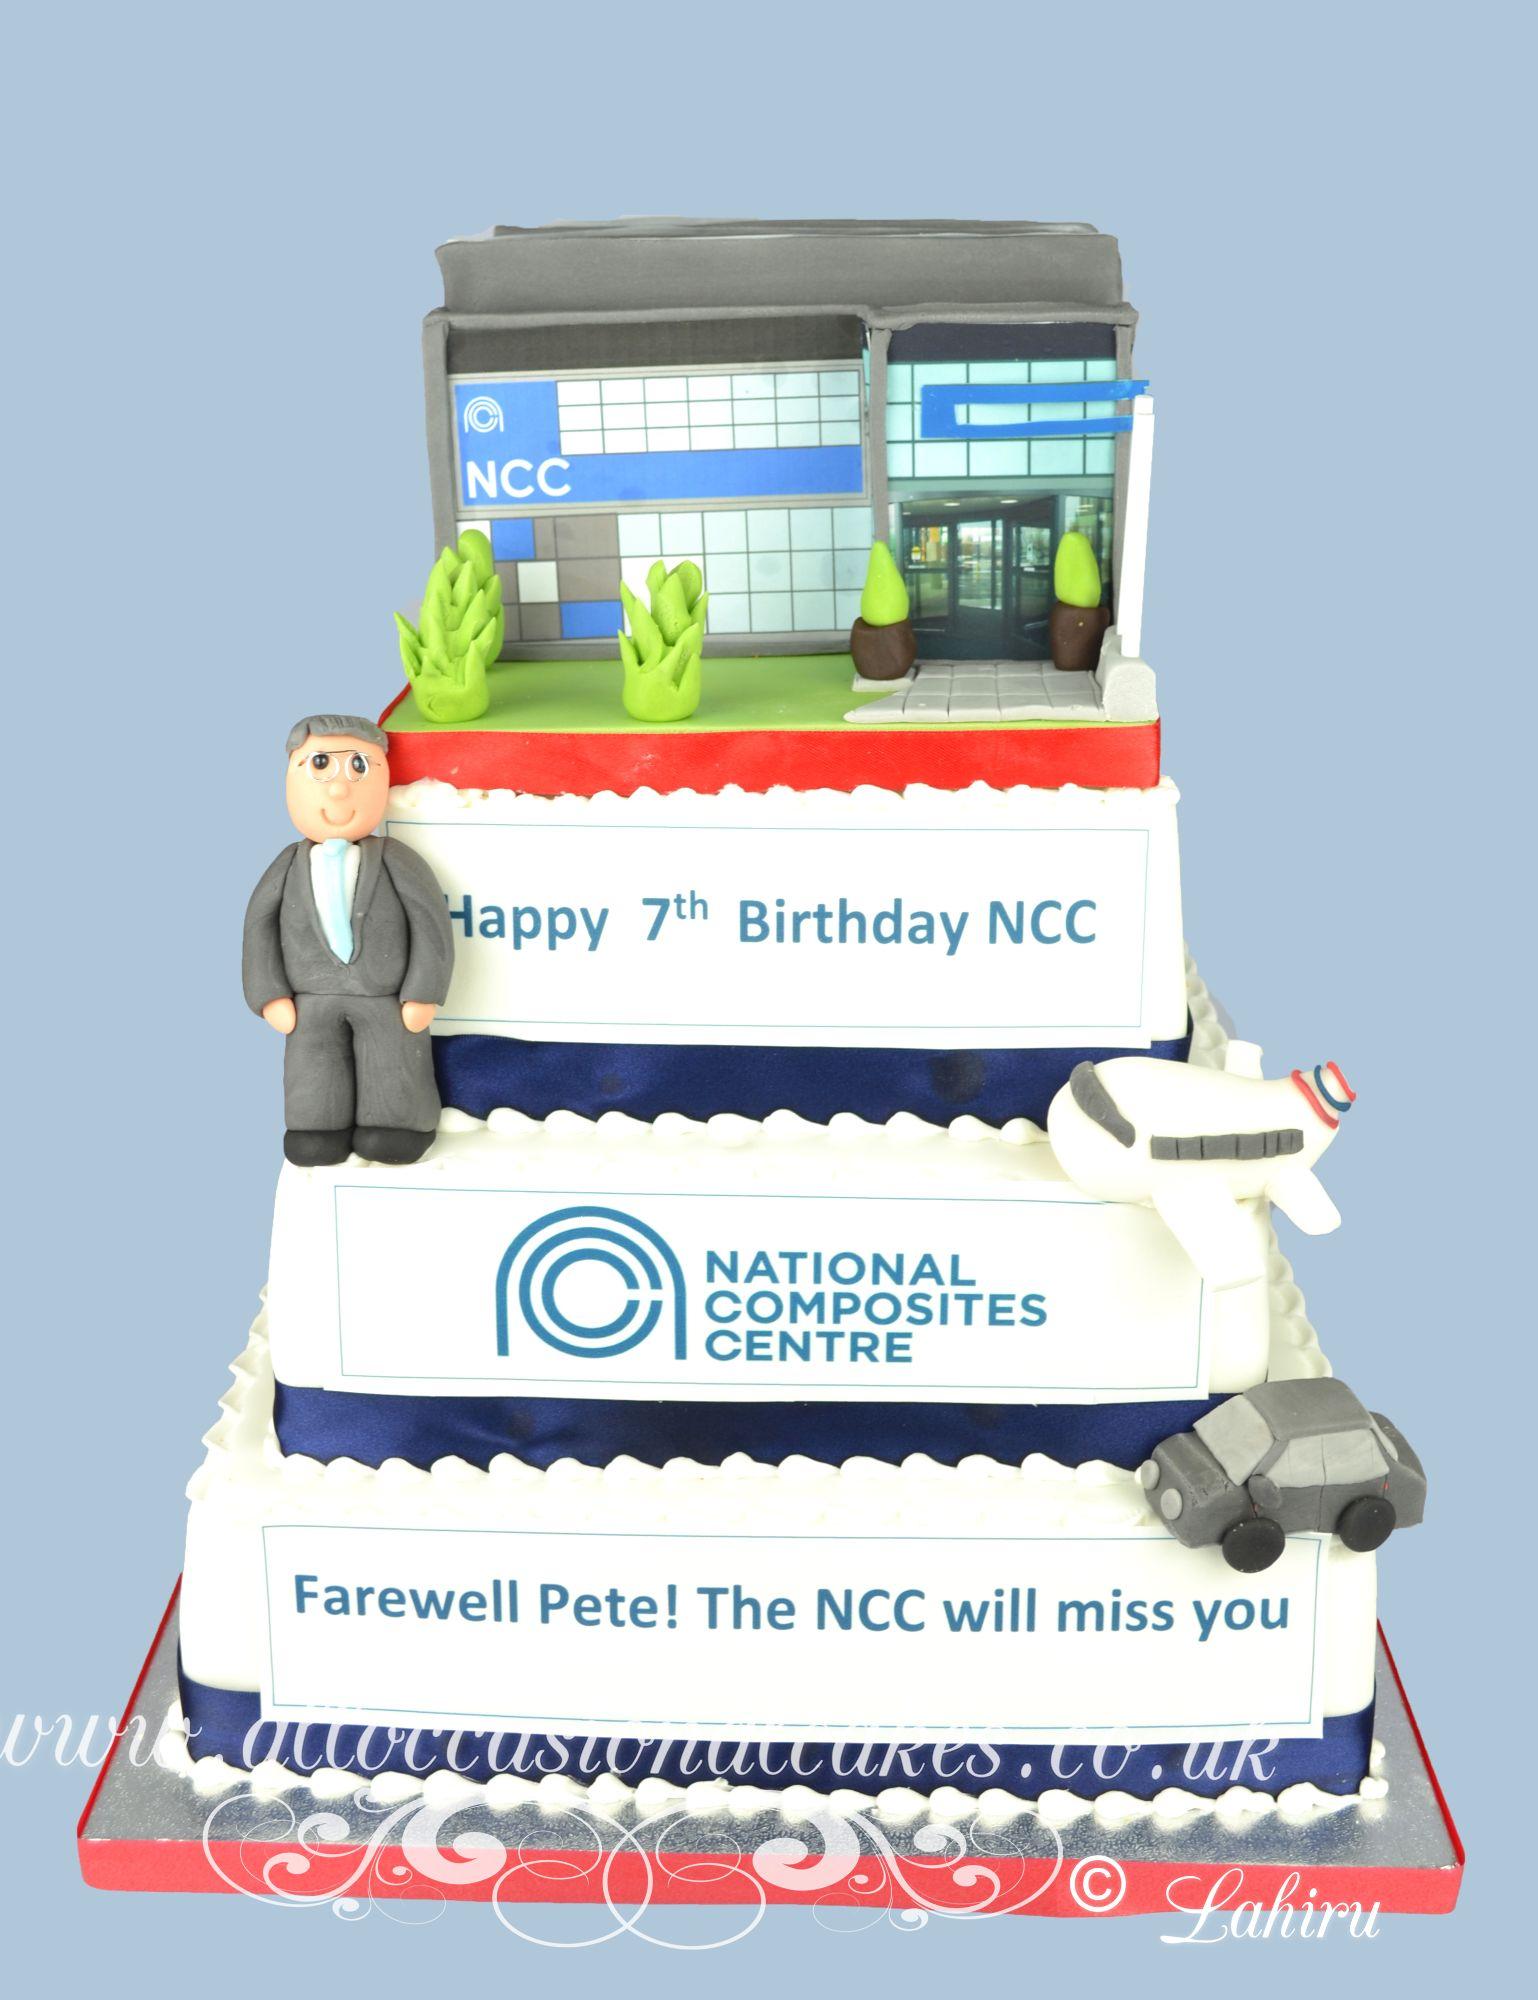 National composites centre birthday cake